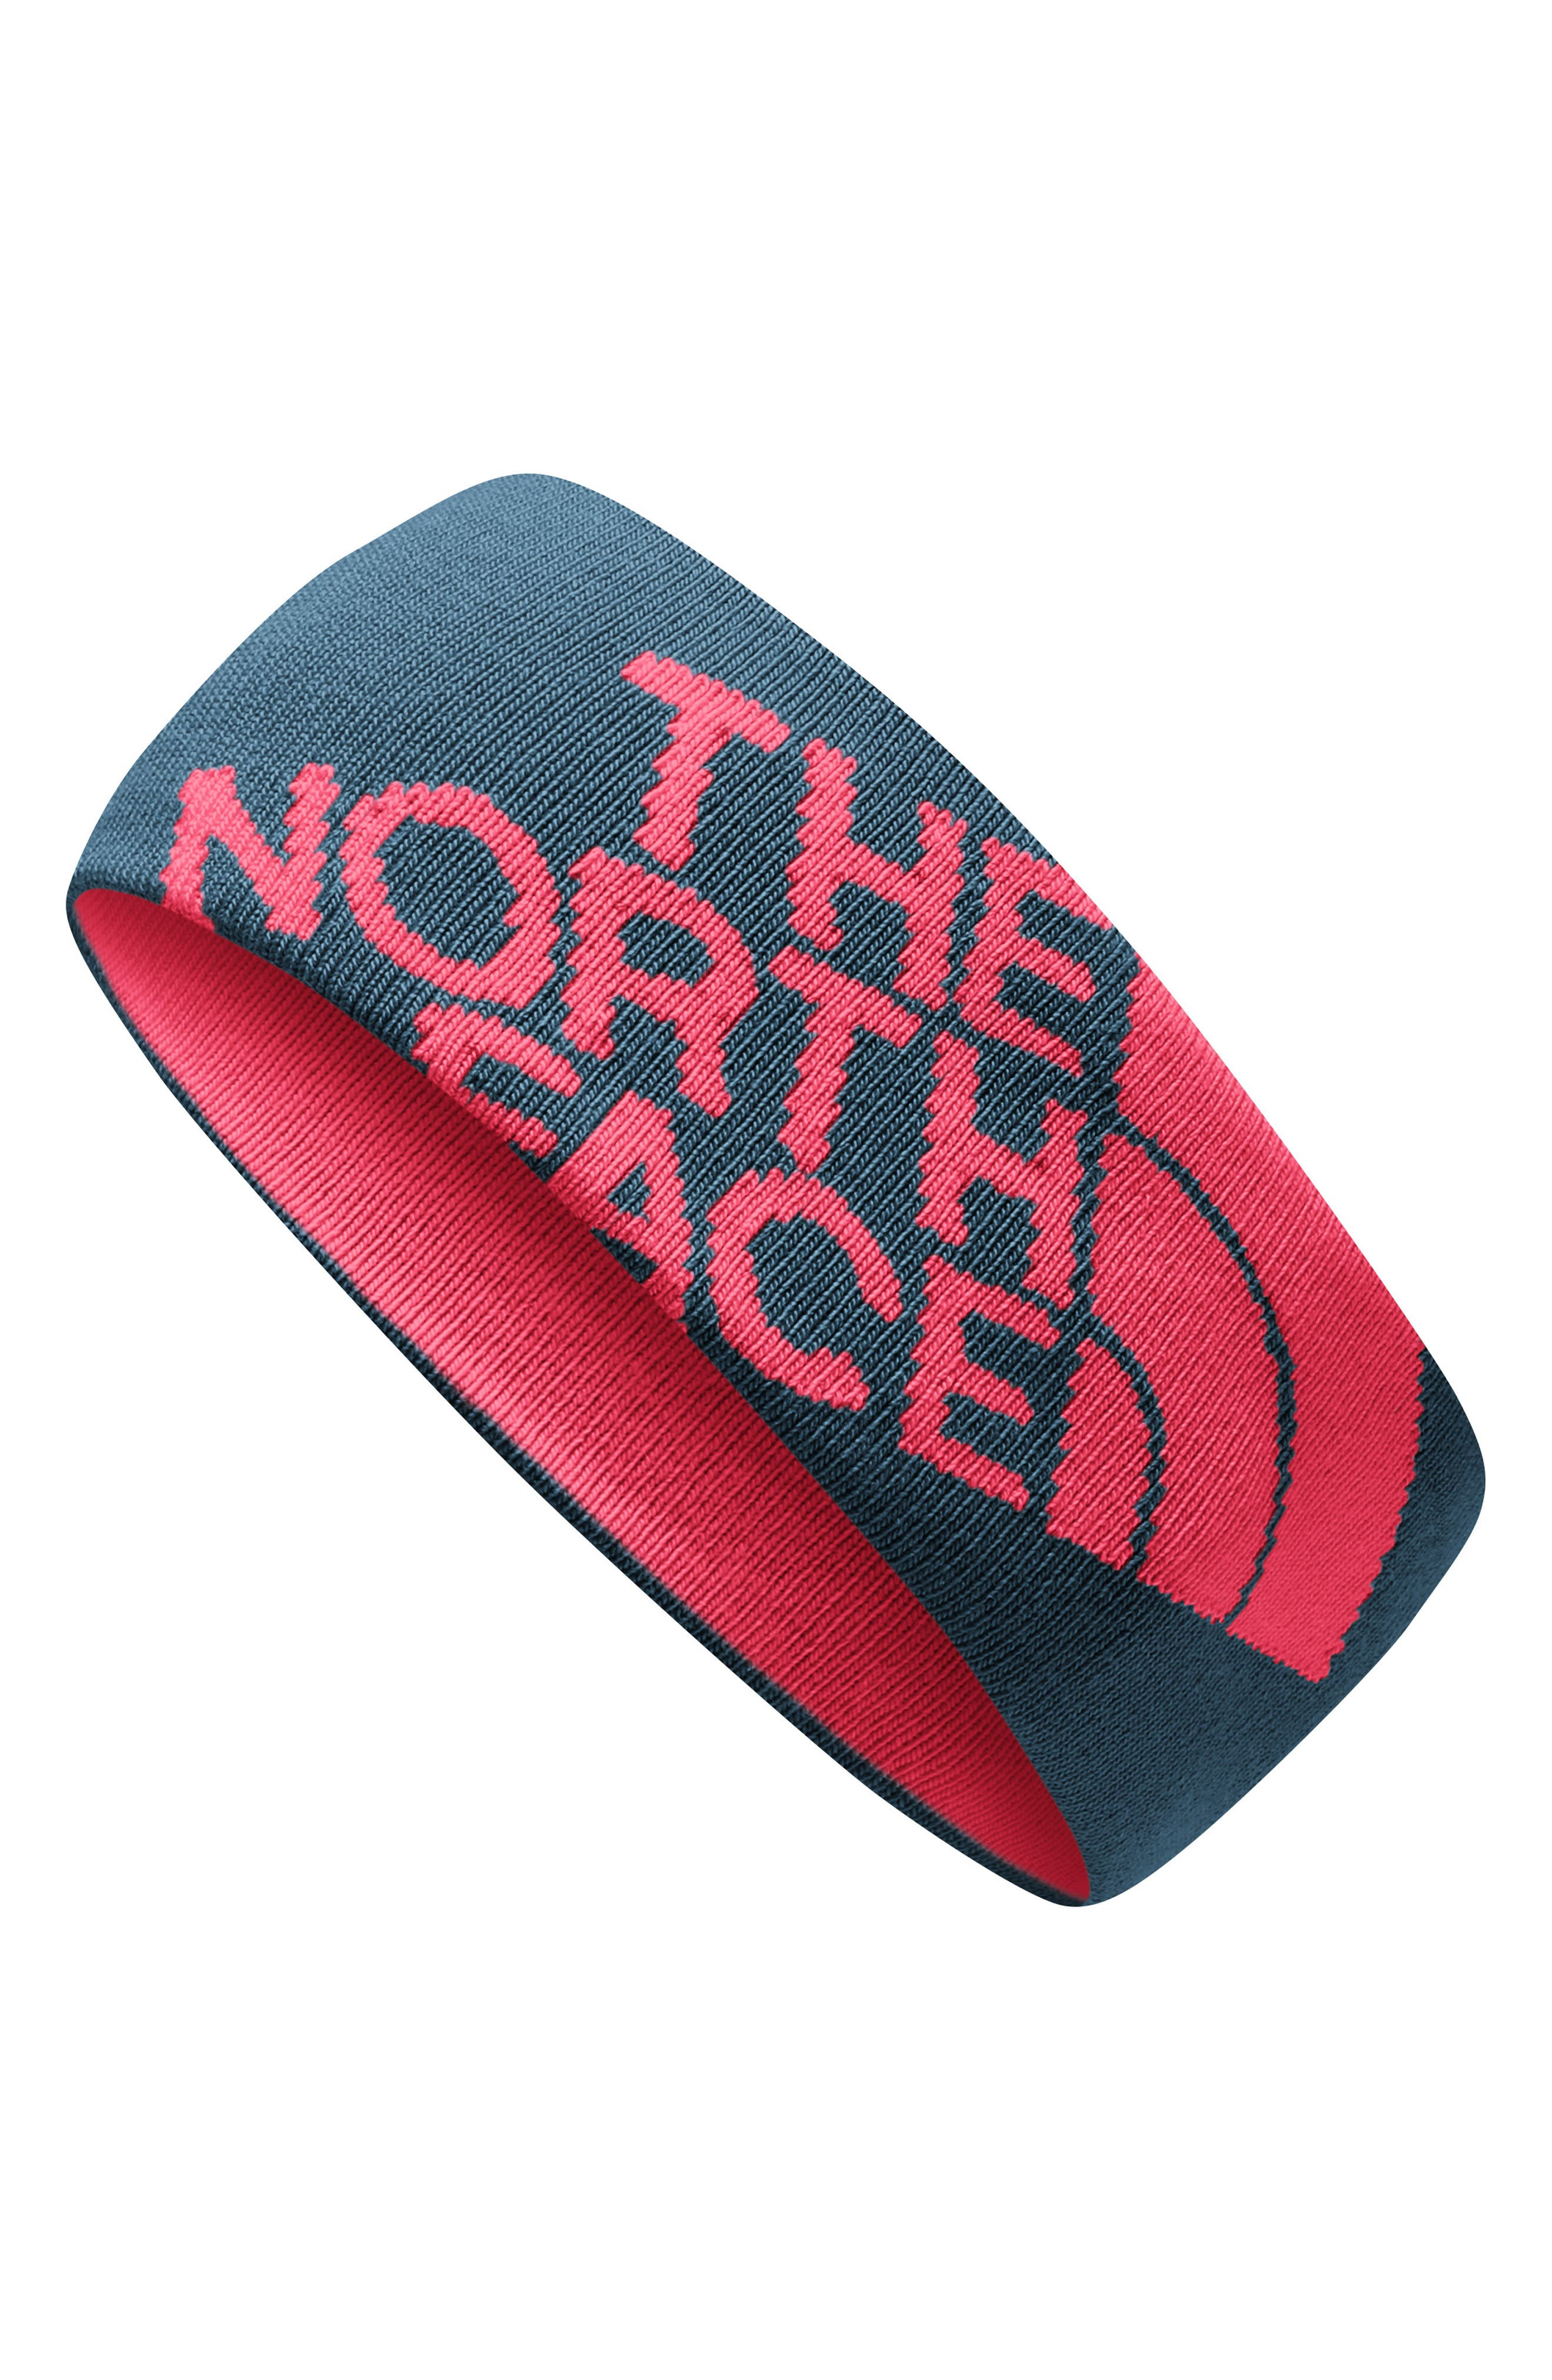 THE NORTH FACE Chizzler Headband, Main, color, 401